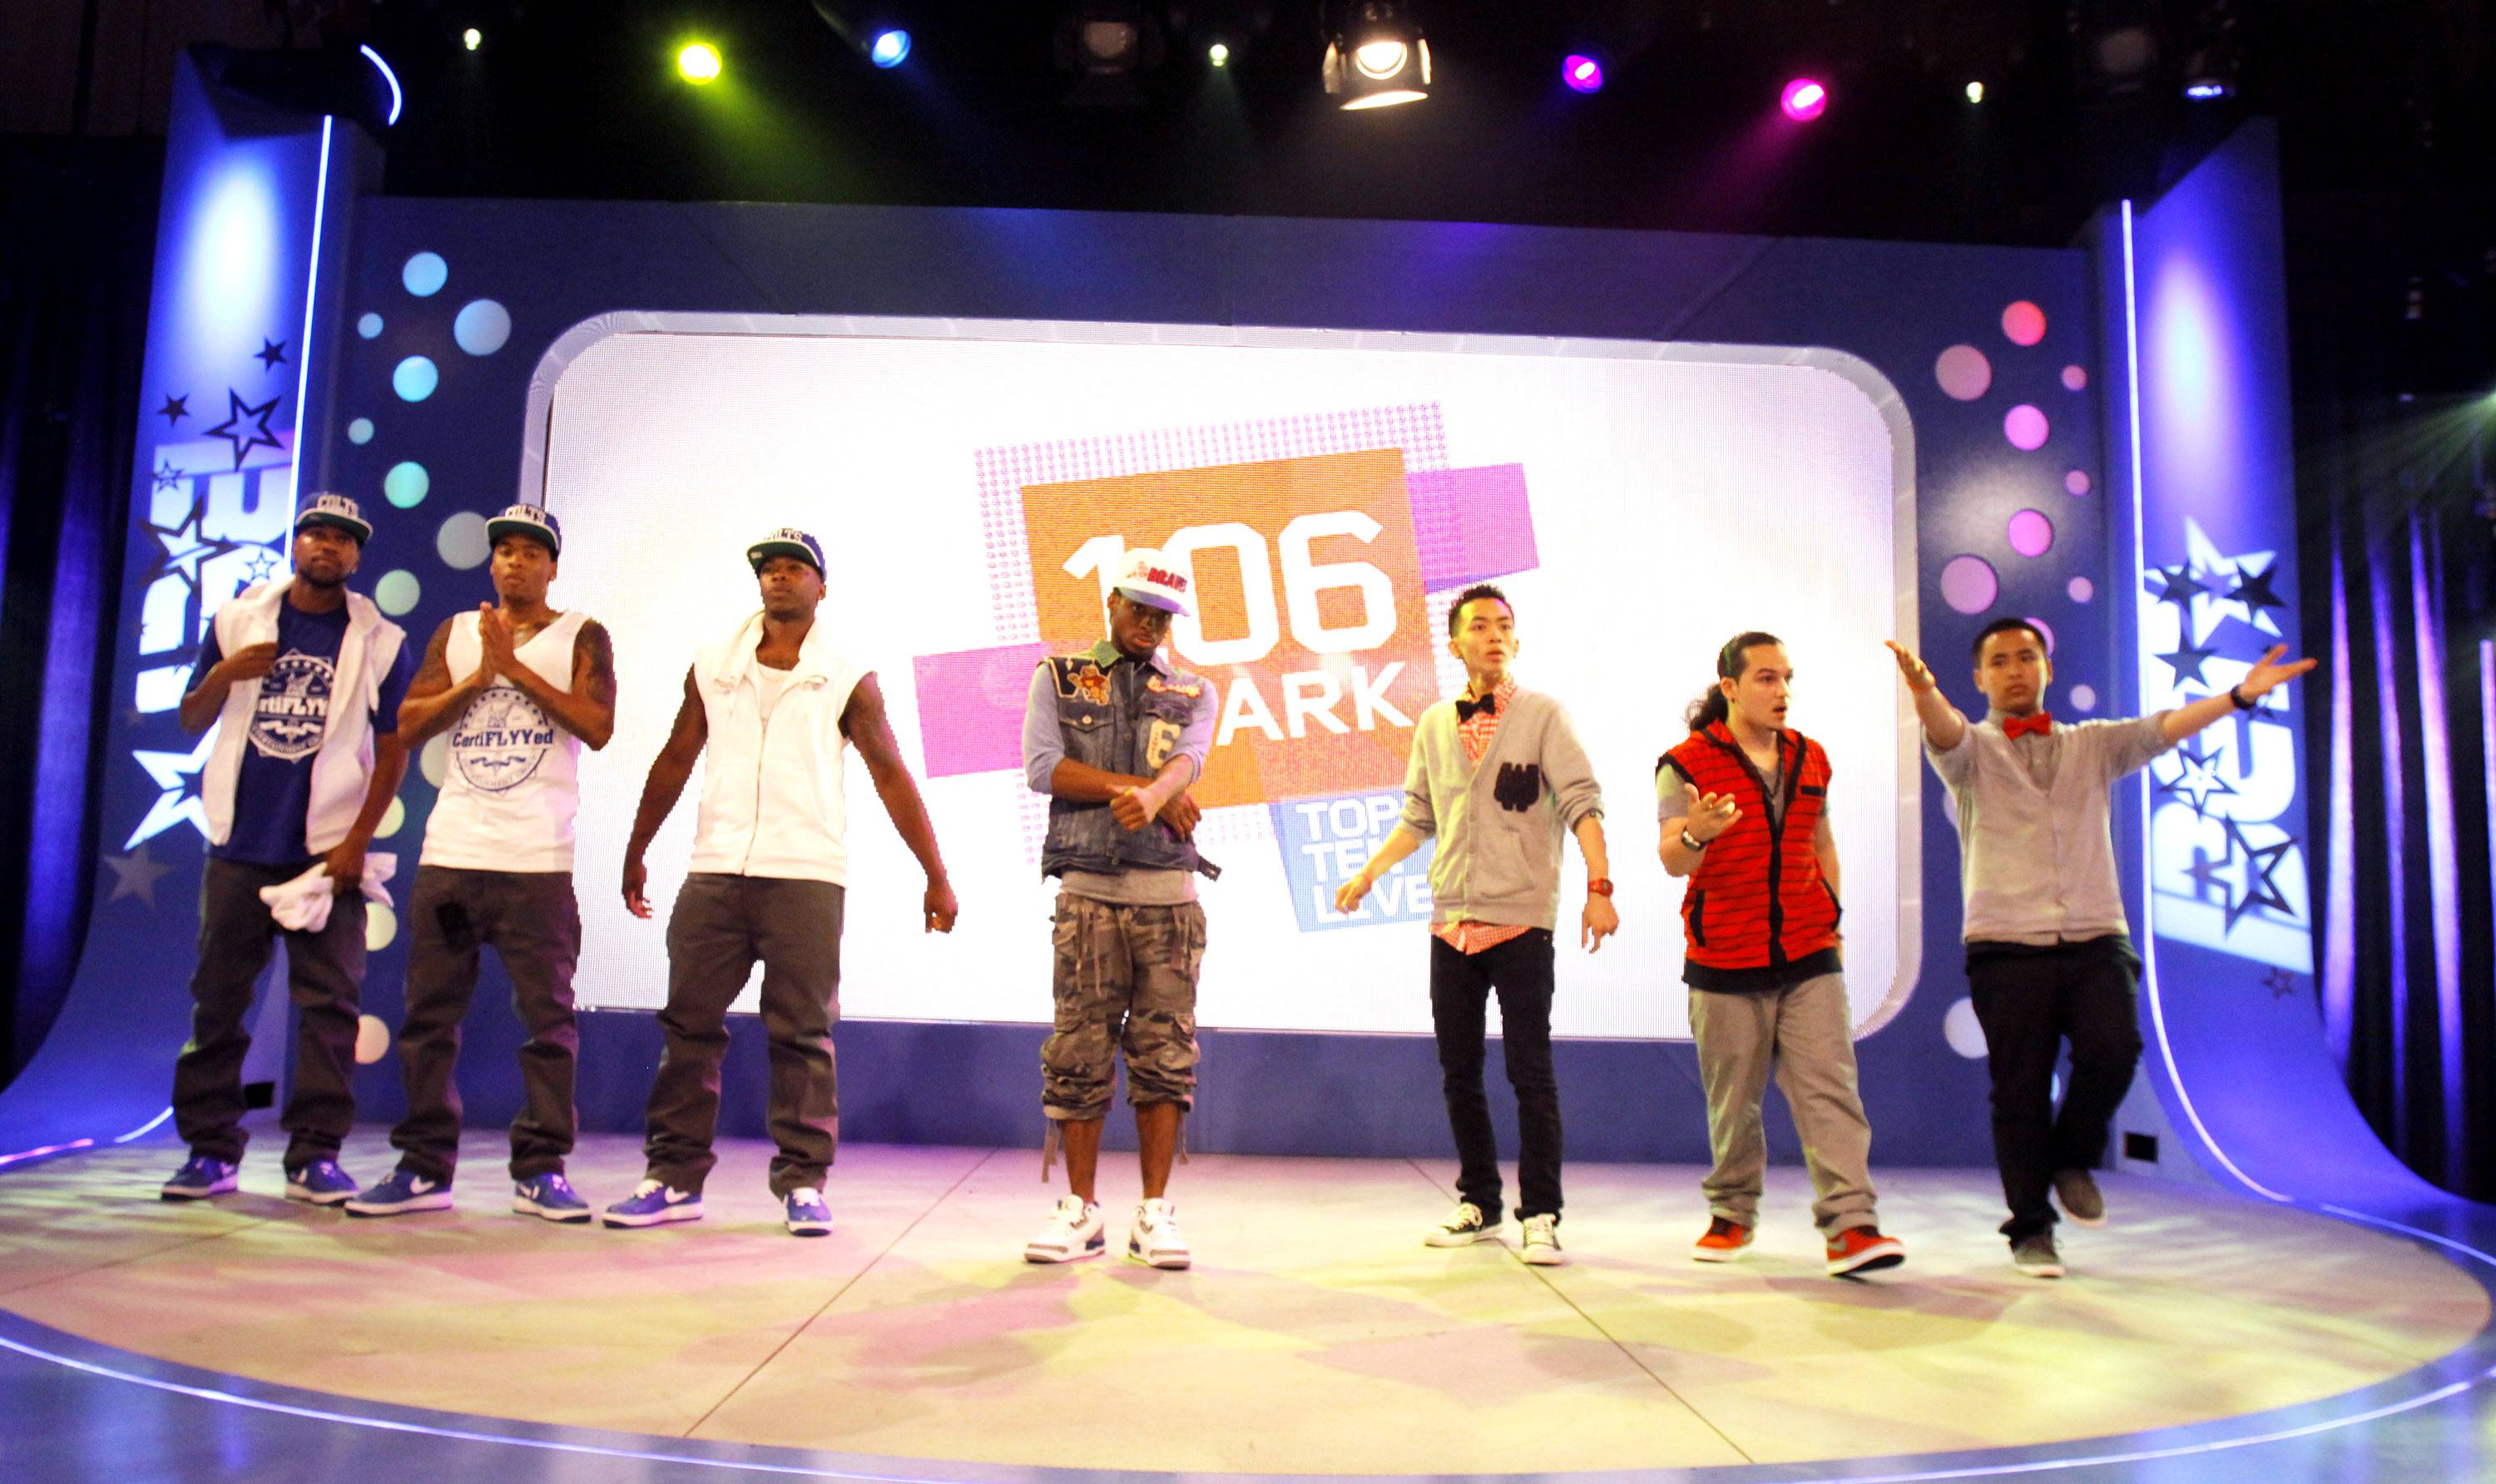 The Contestants - The Male Hip-Hop contestants stepped up to battle!(Photo by Ernest Estim?)